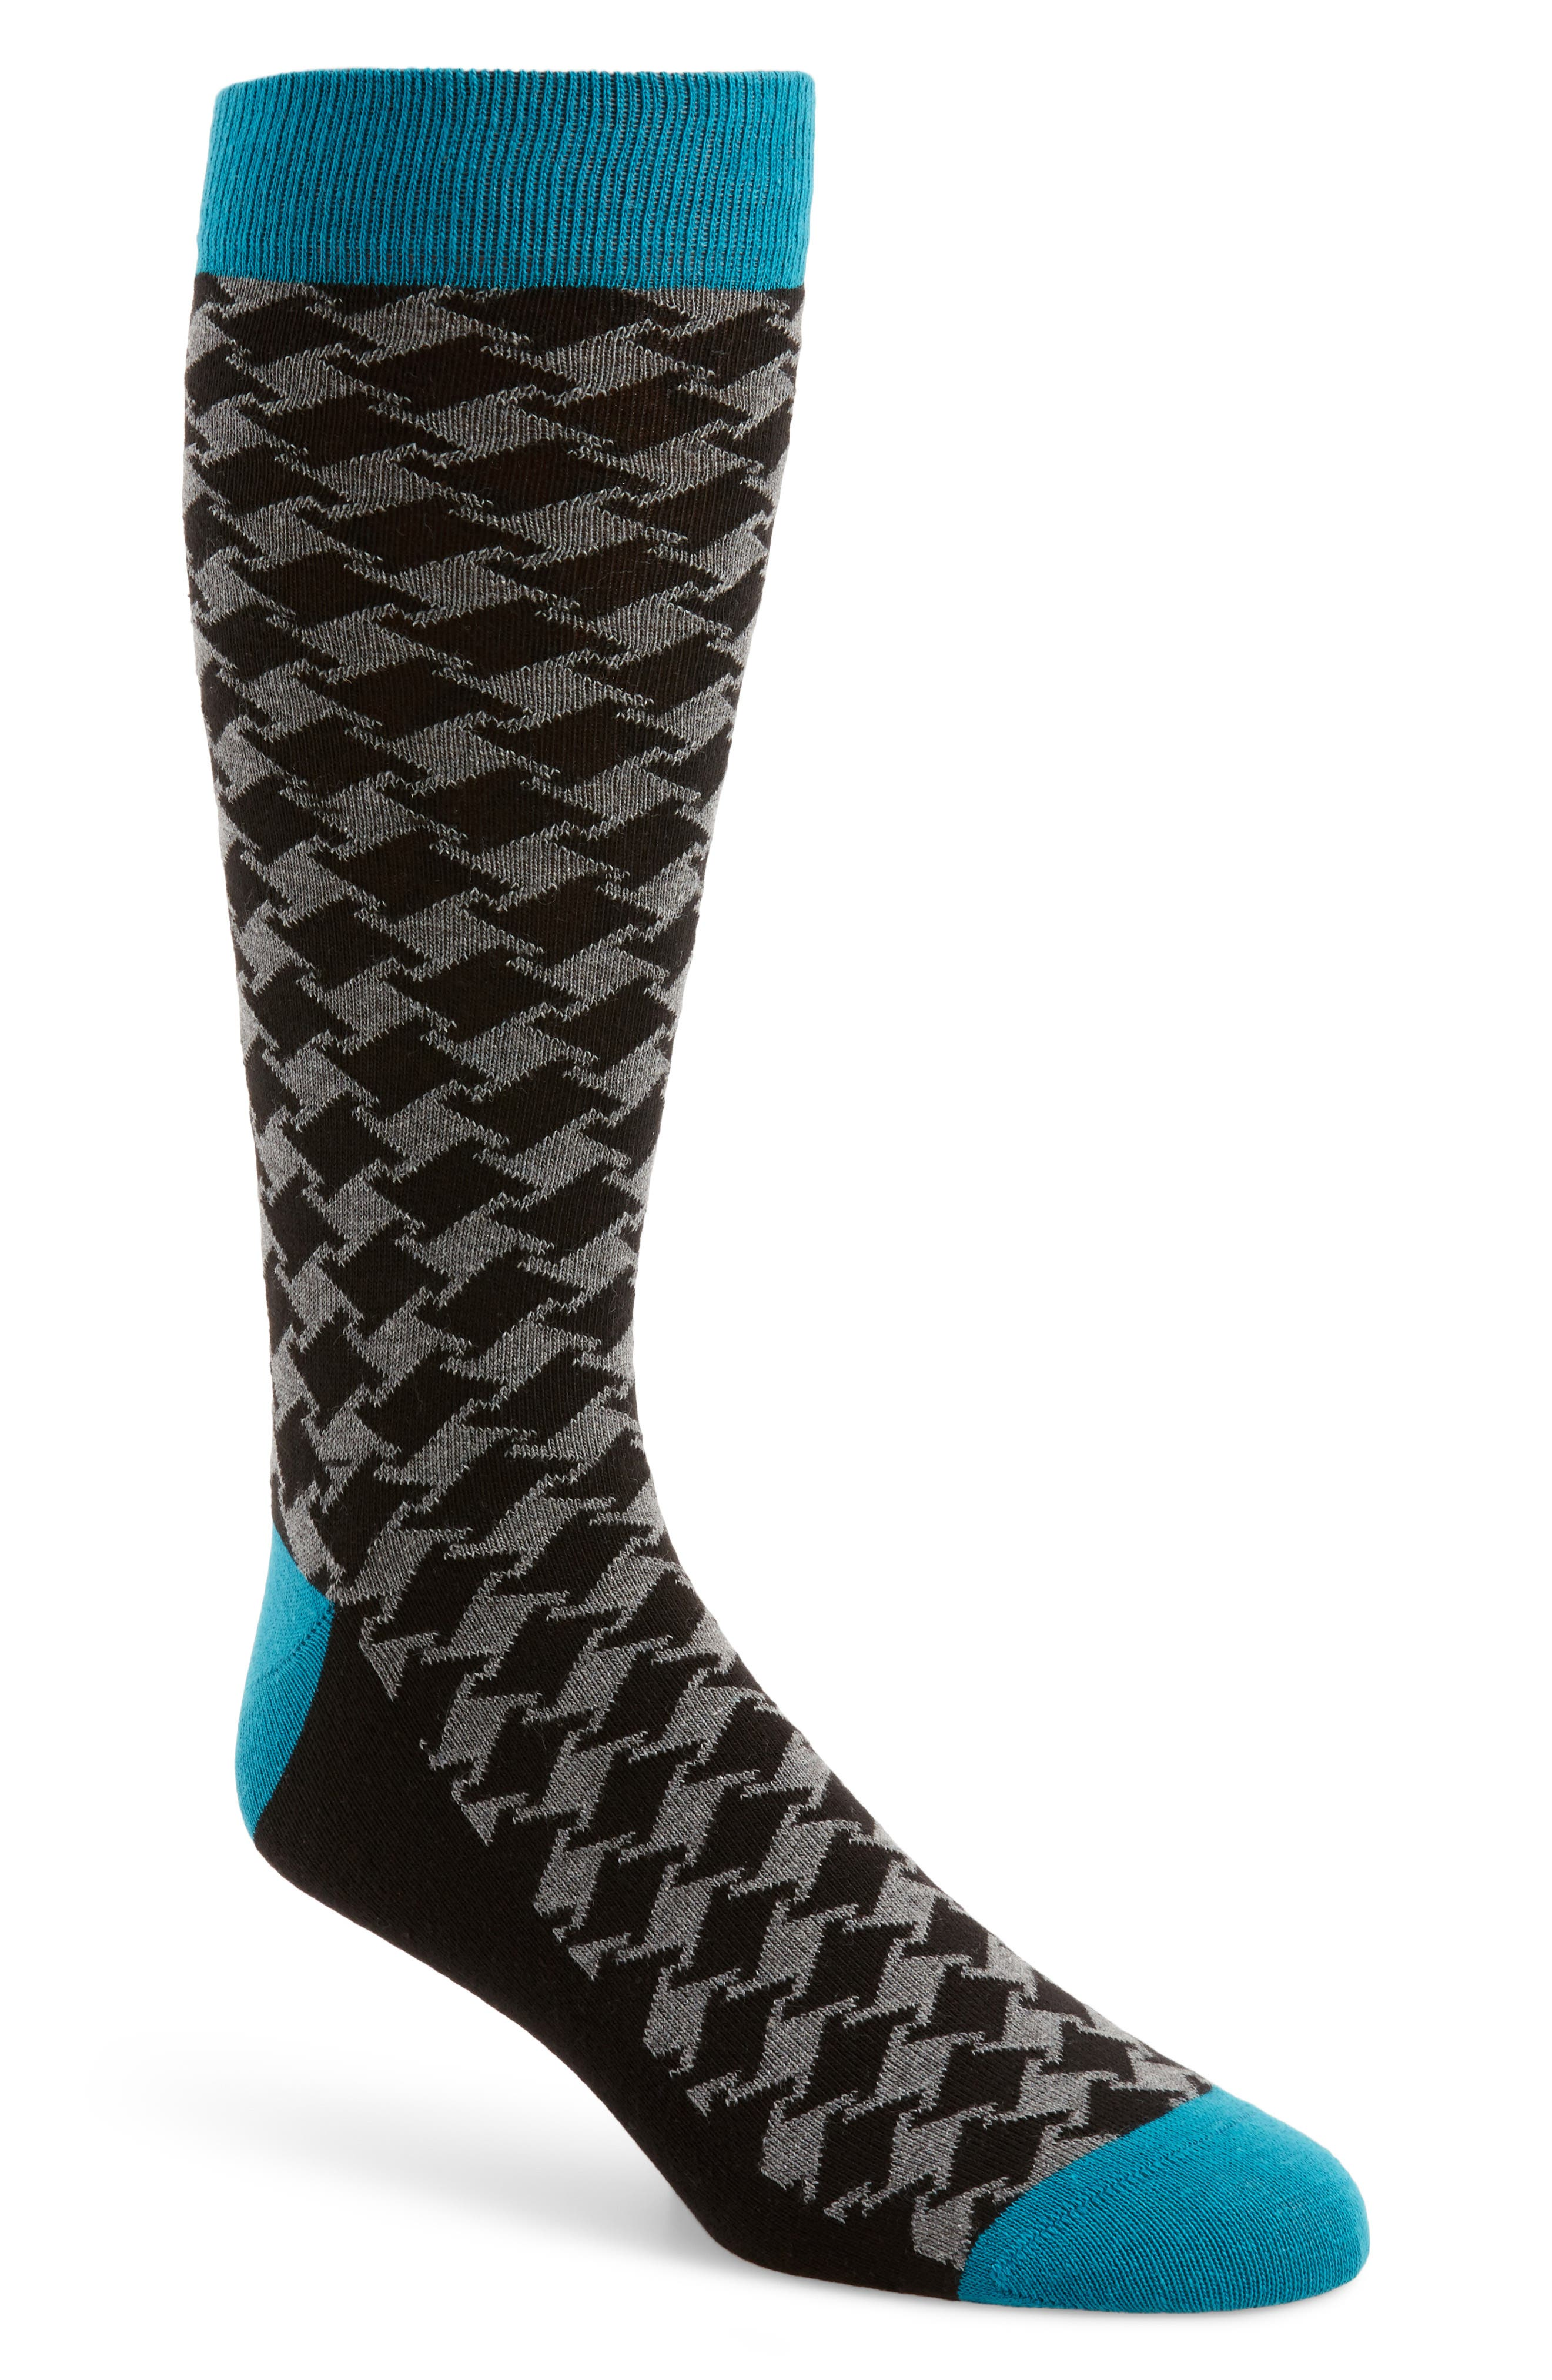 Houndstooth Socks,                         Main,                         color, Teal